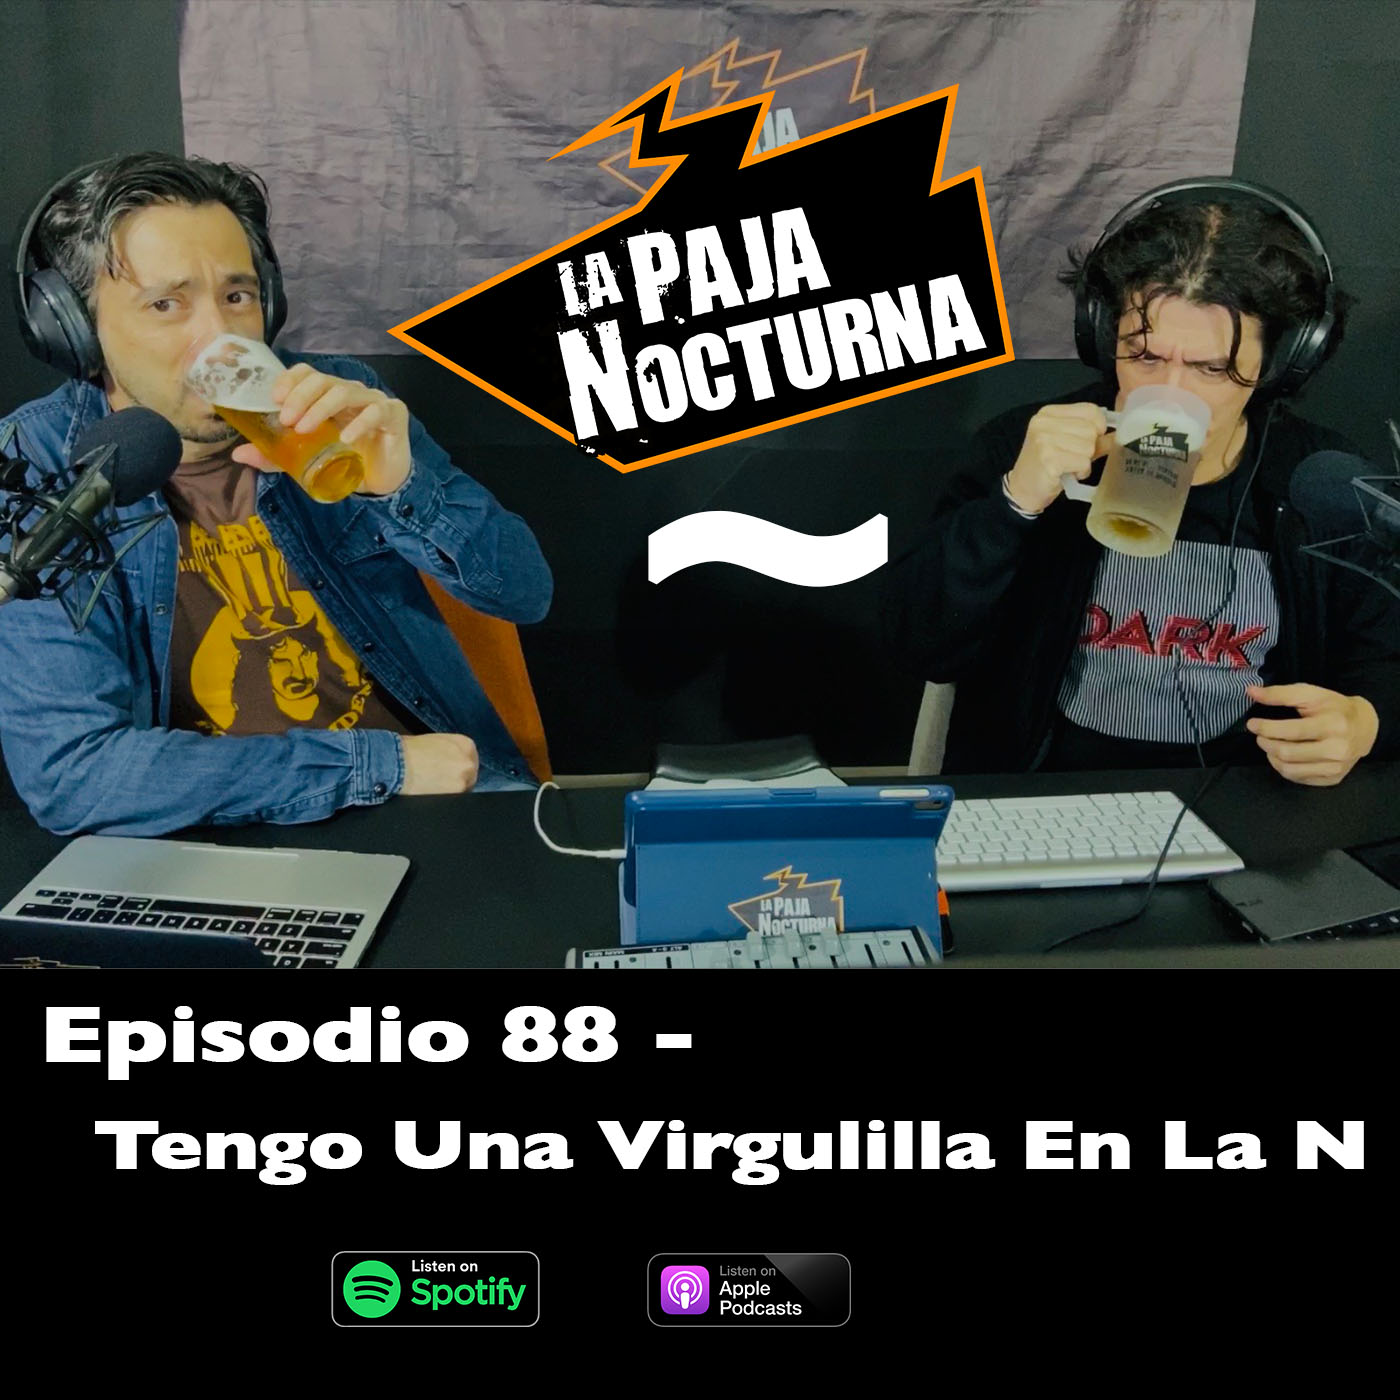 La paja nocturna podcast Episodio 88